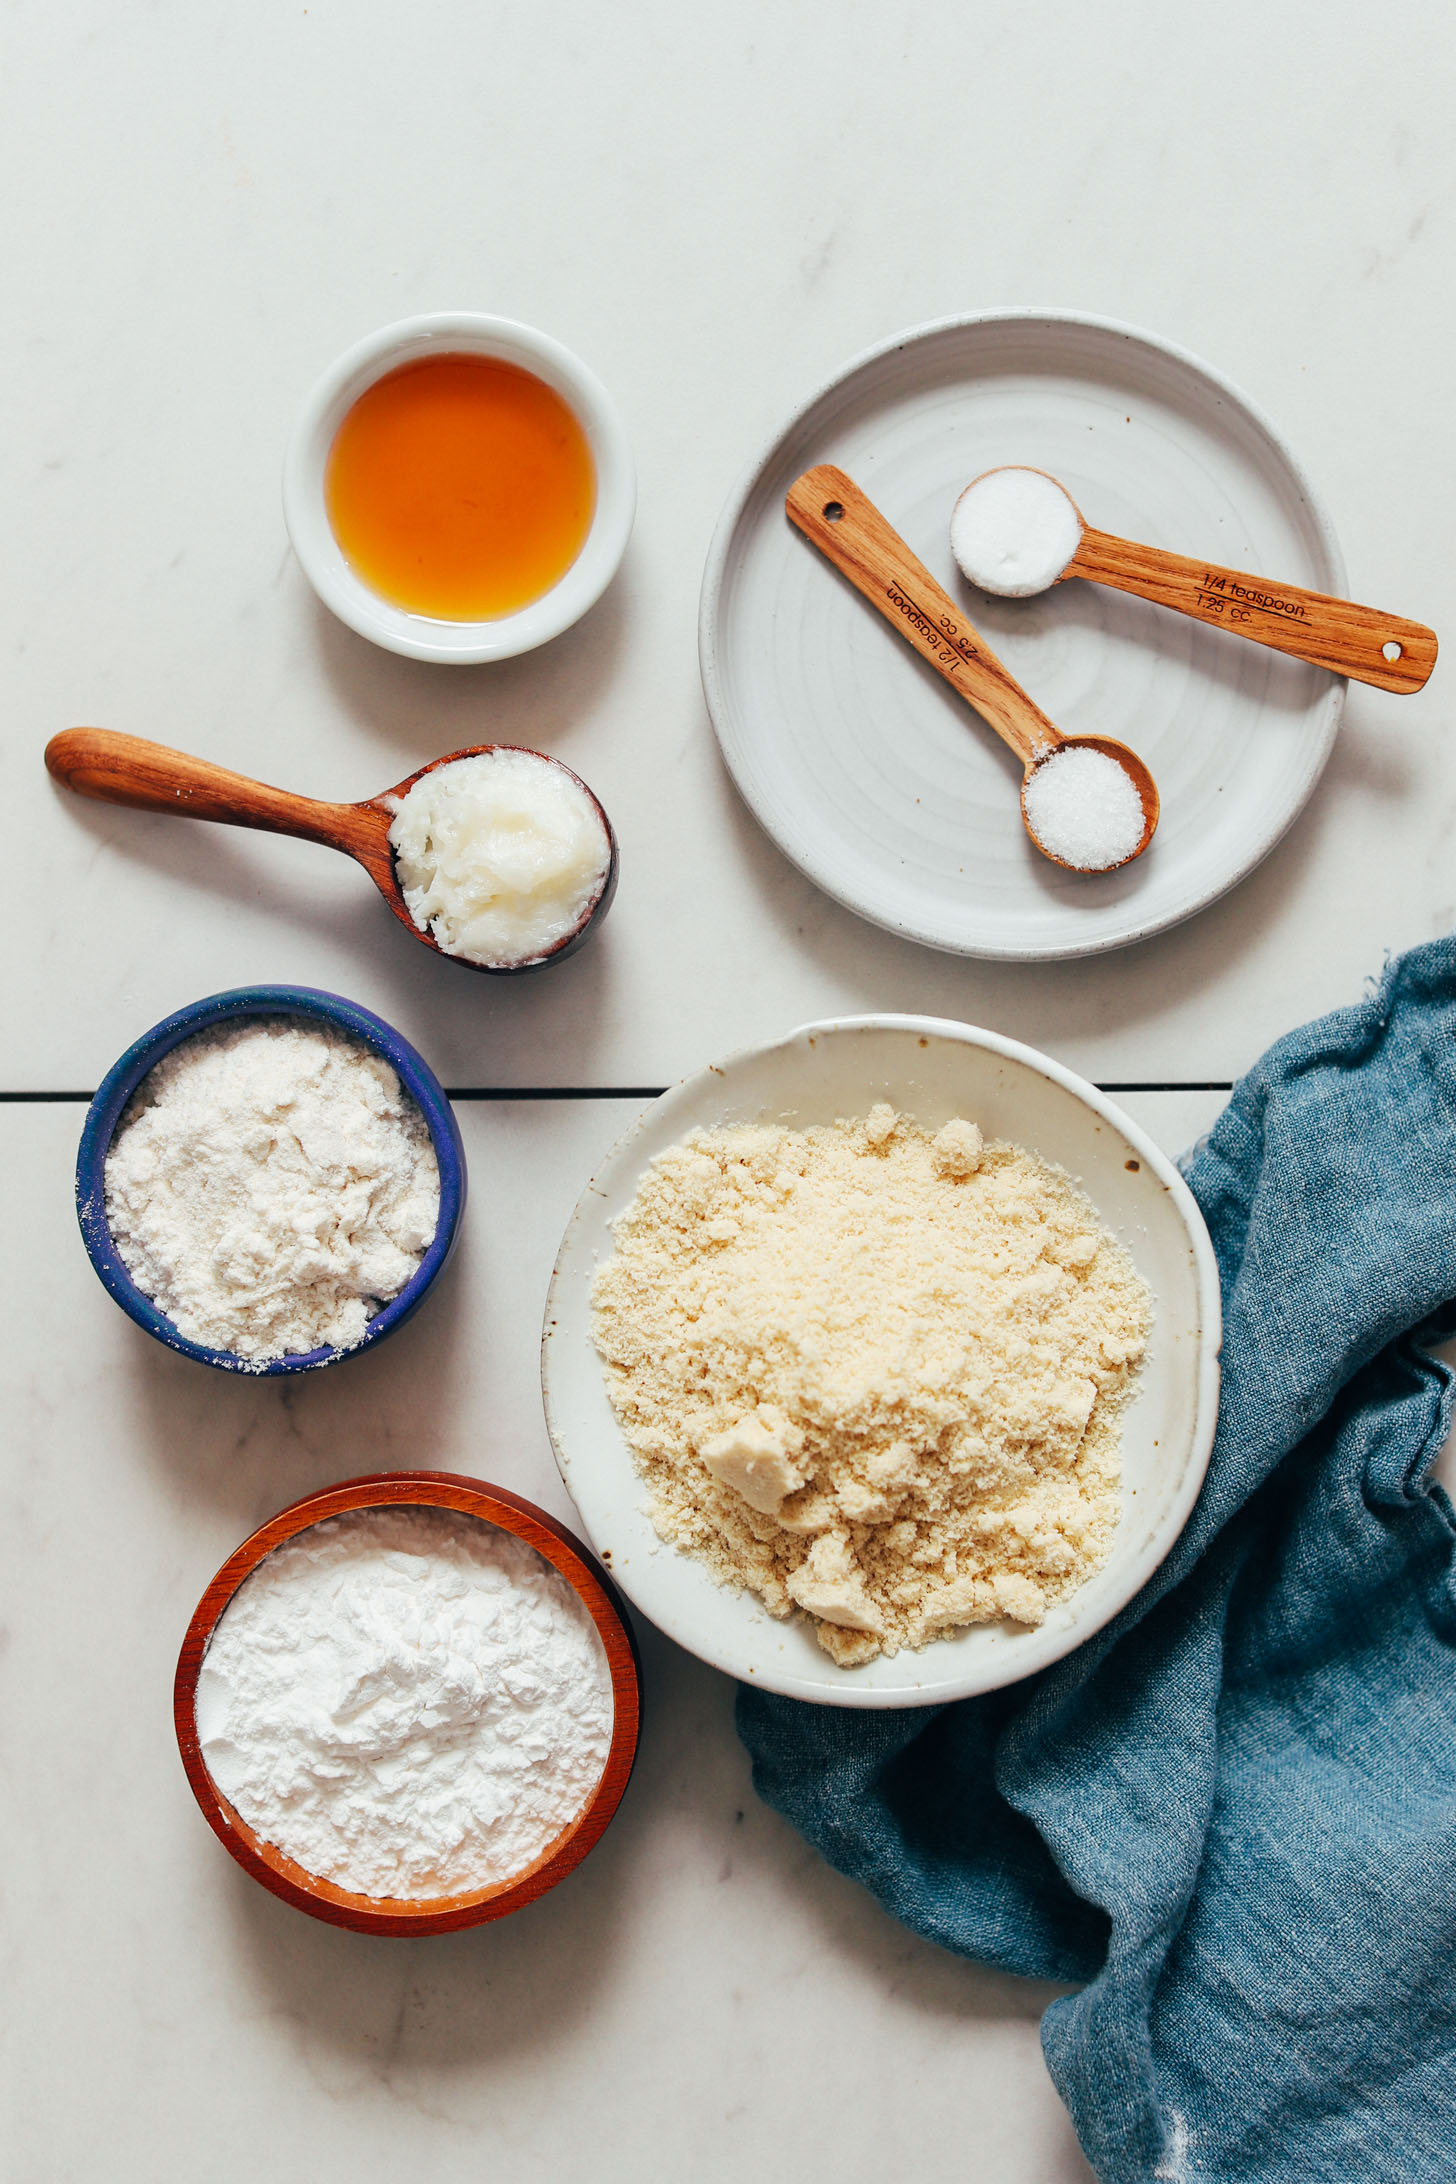 Bowls and spoonfuls of almond flour, gluten-free flour blend, tapioca flour, baking soda, sea salt, coconut oil, and maple syrup